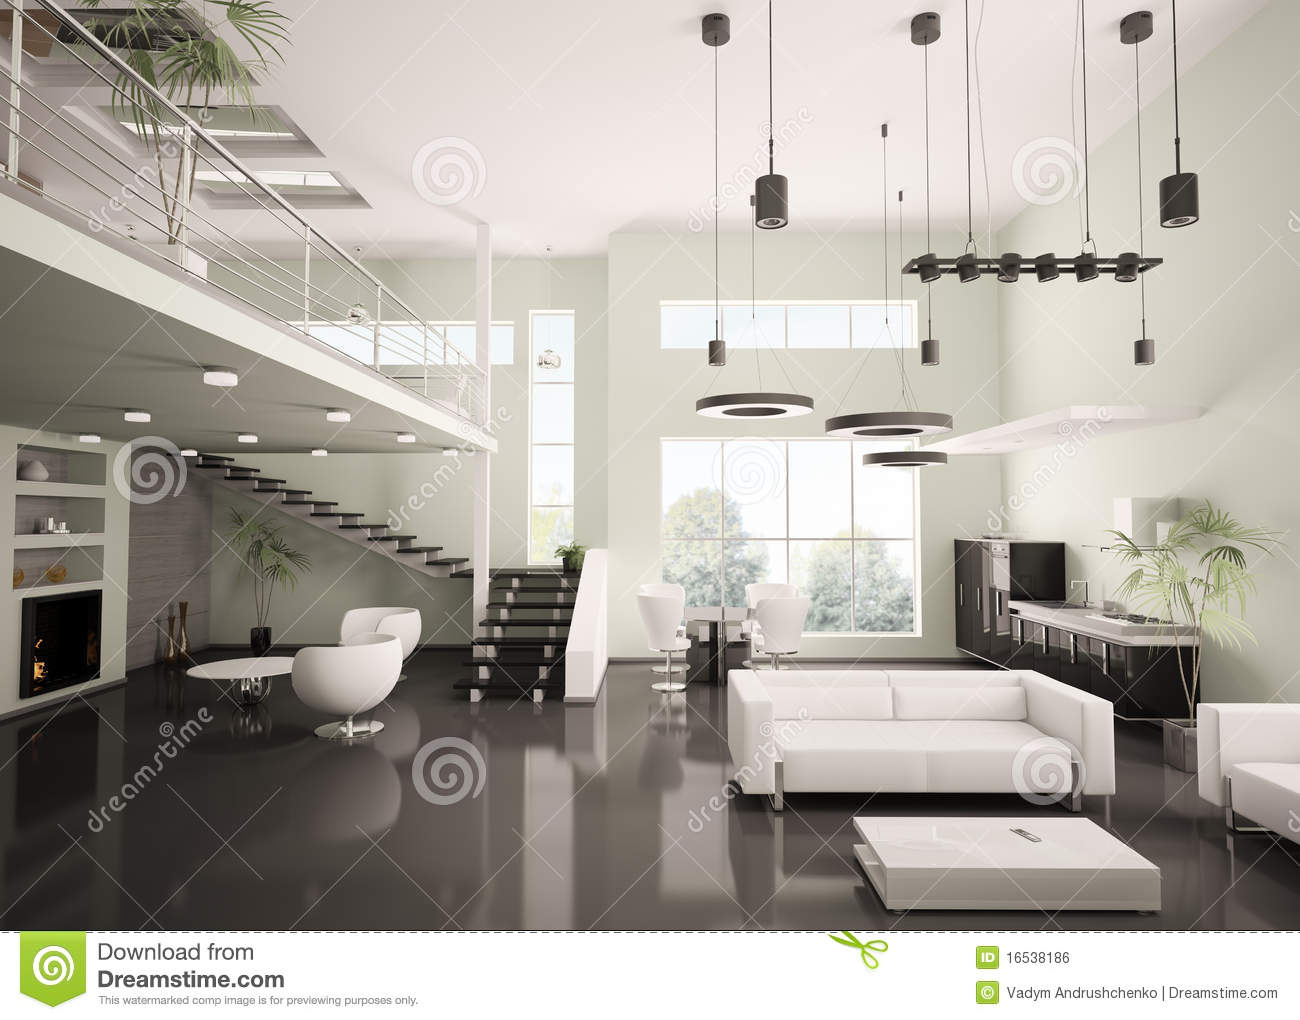 Modern apartment interior 3d render stock illustration for Modern interior